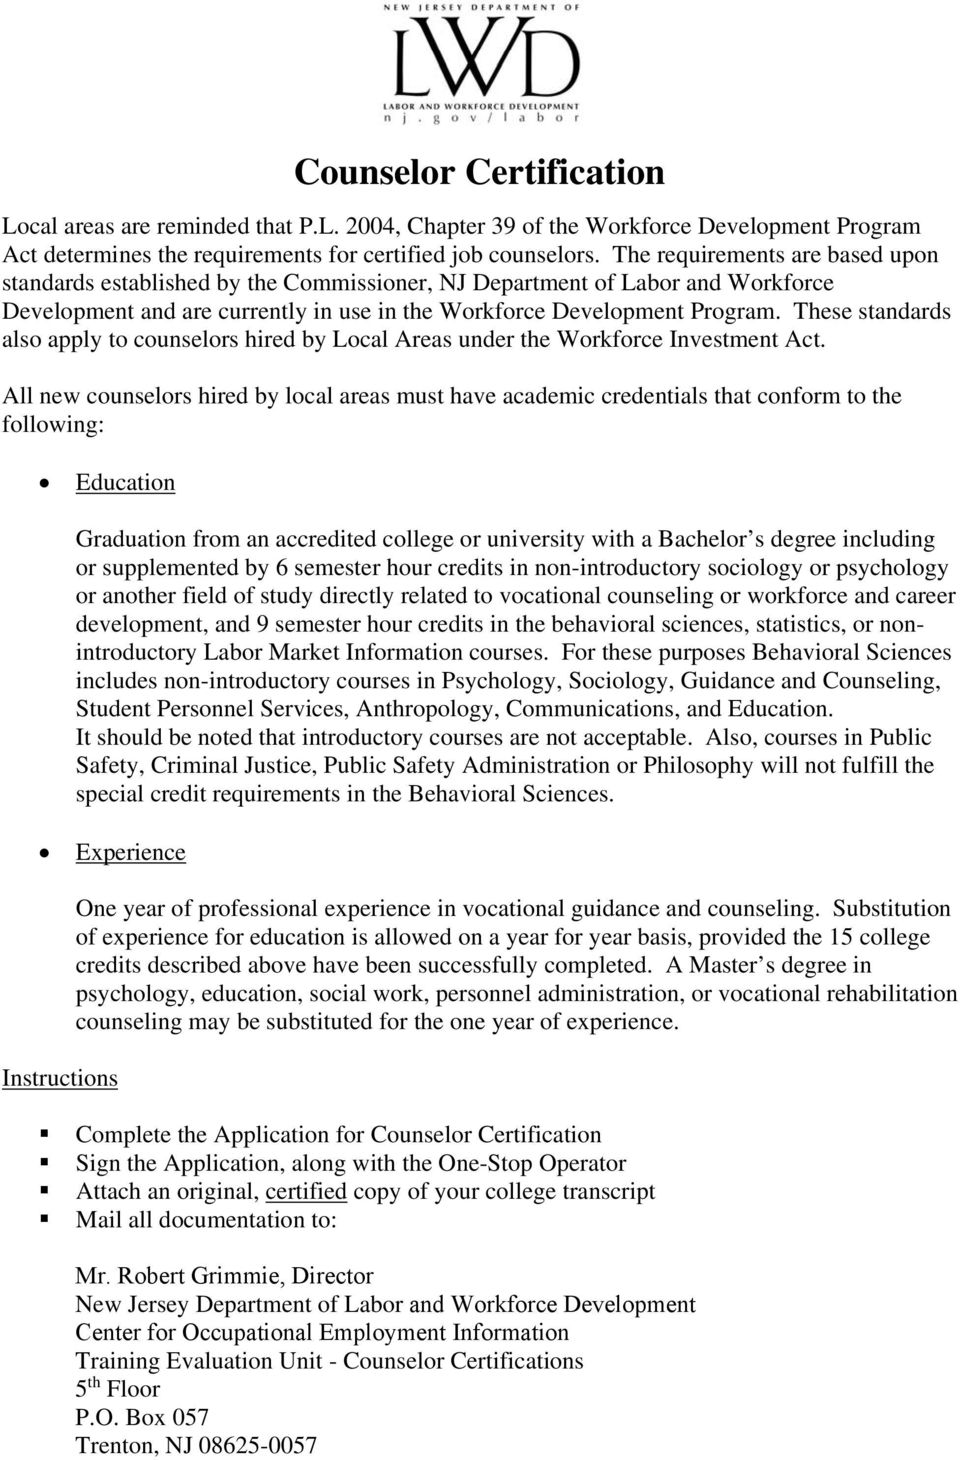 These standards also apply to counselors hired by Local Areas under the Workforce Investment Act.